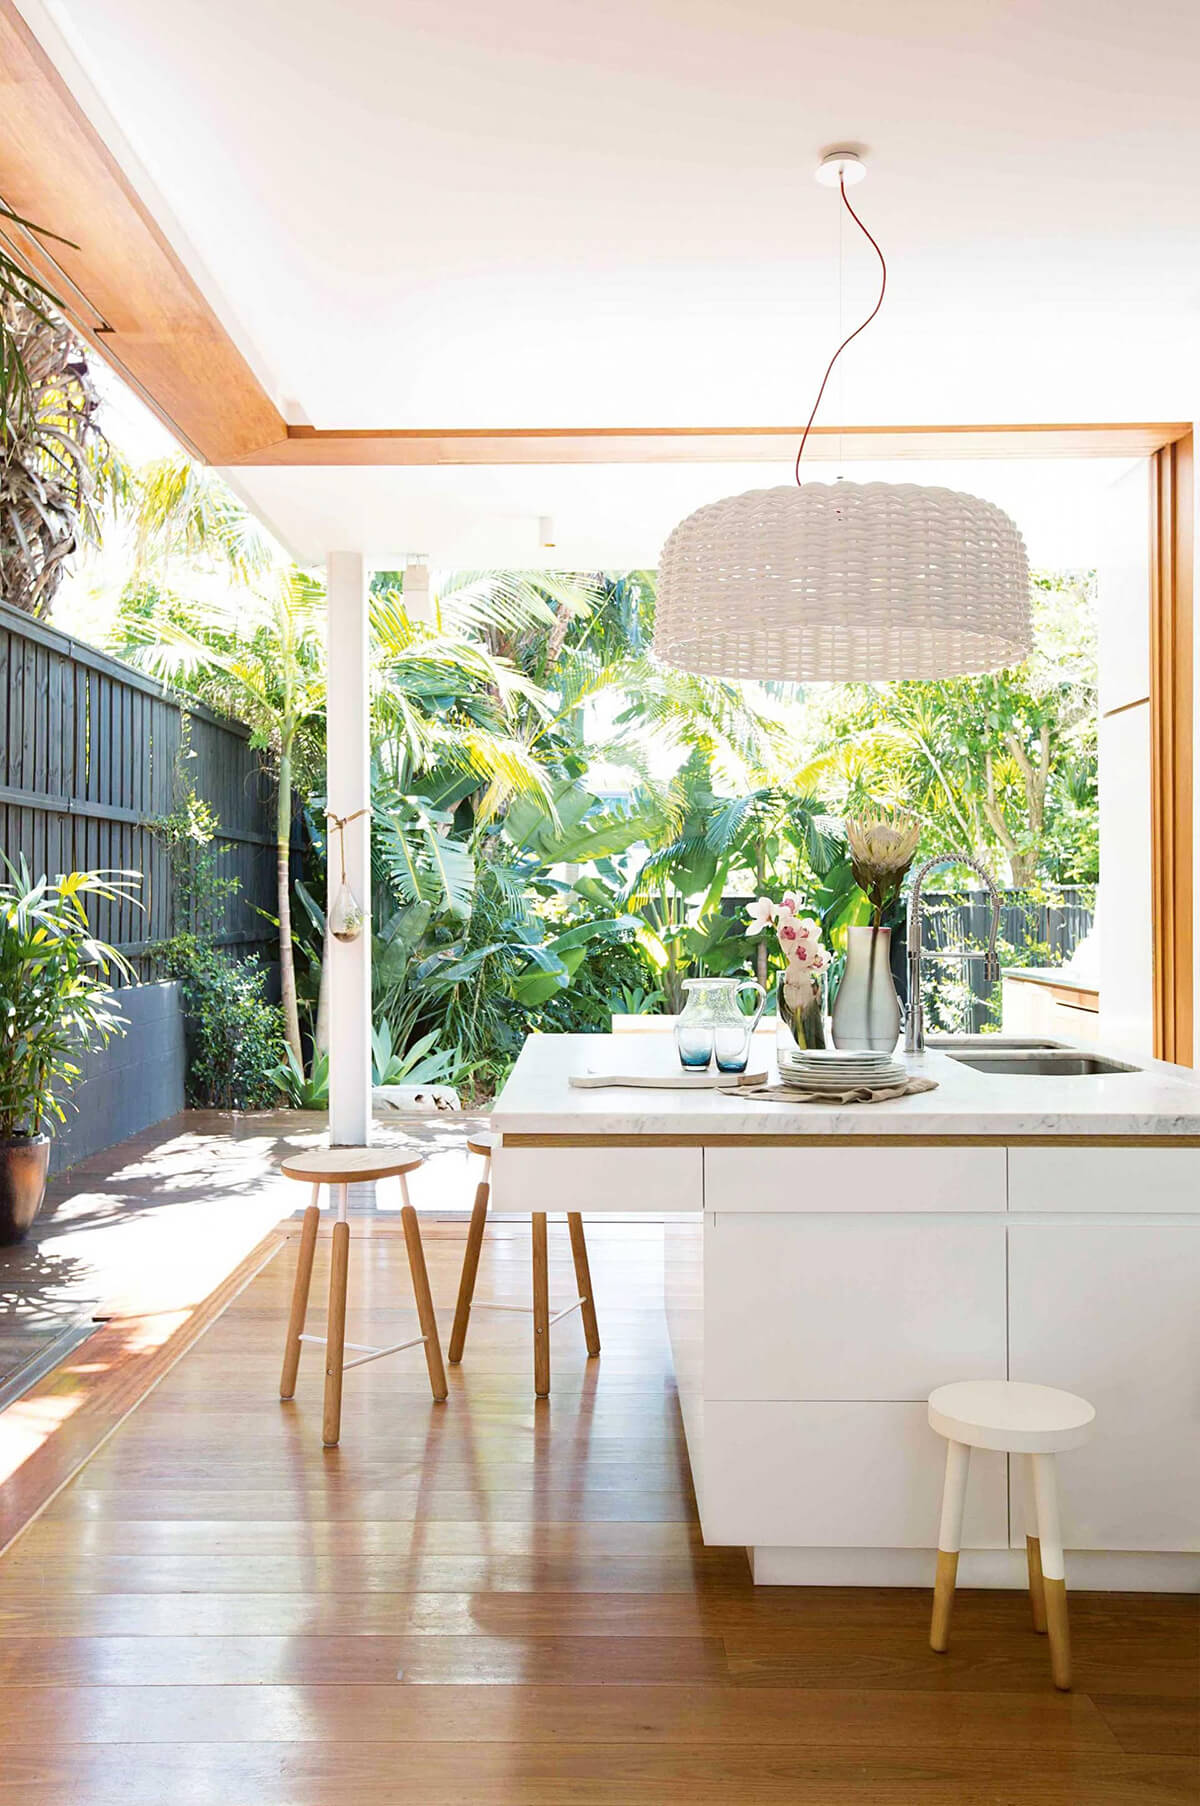 Tropical Style Decorating Idea for the Kitchen